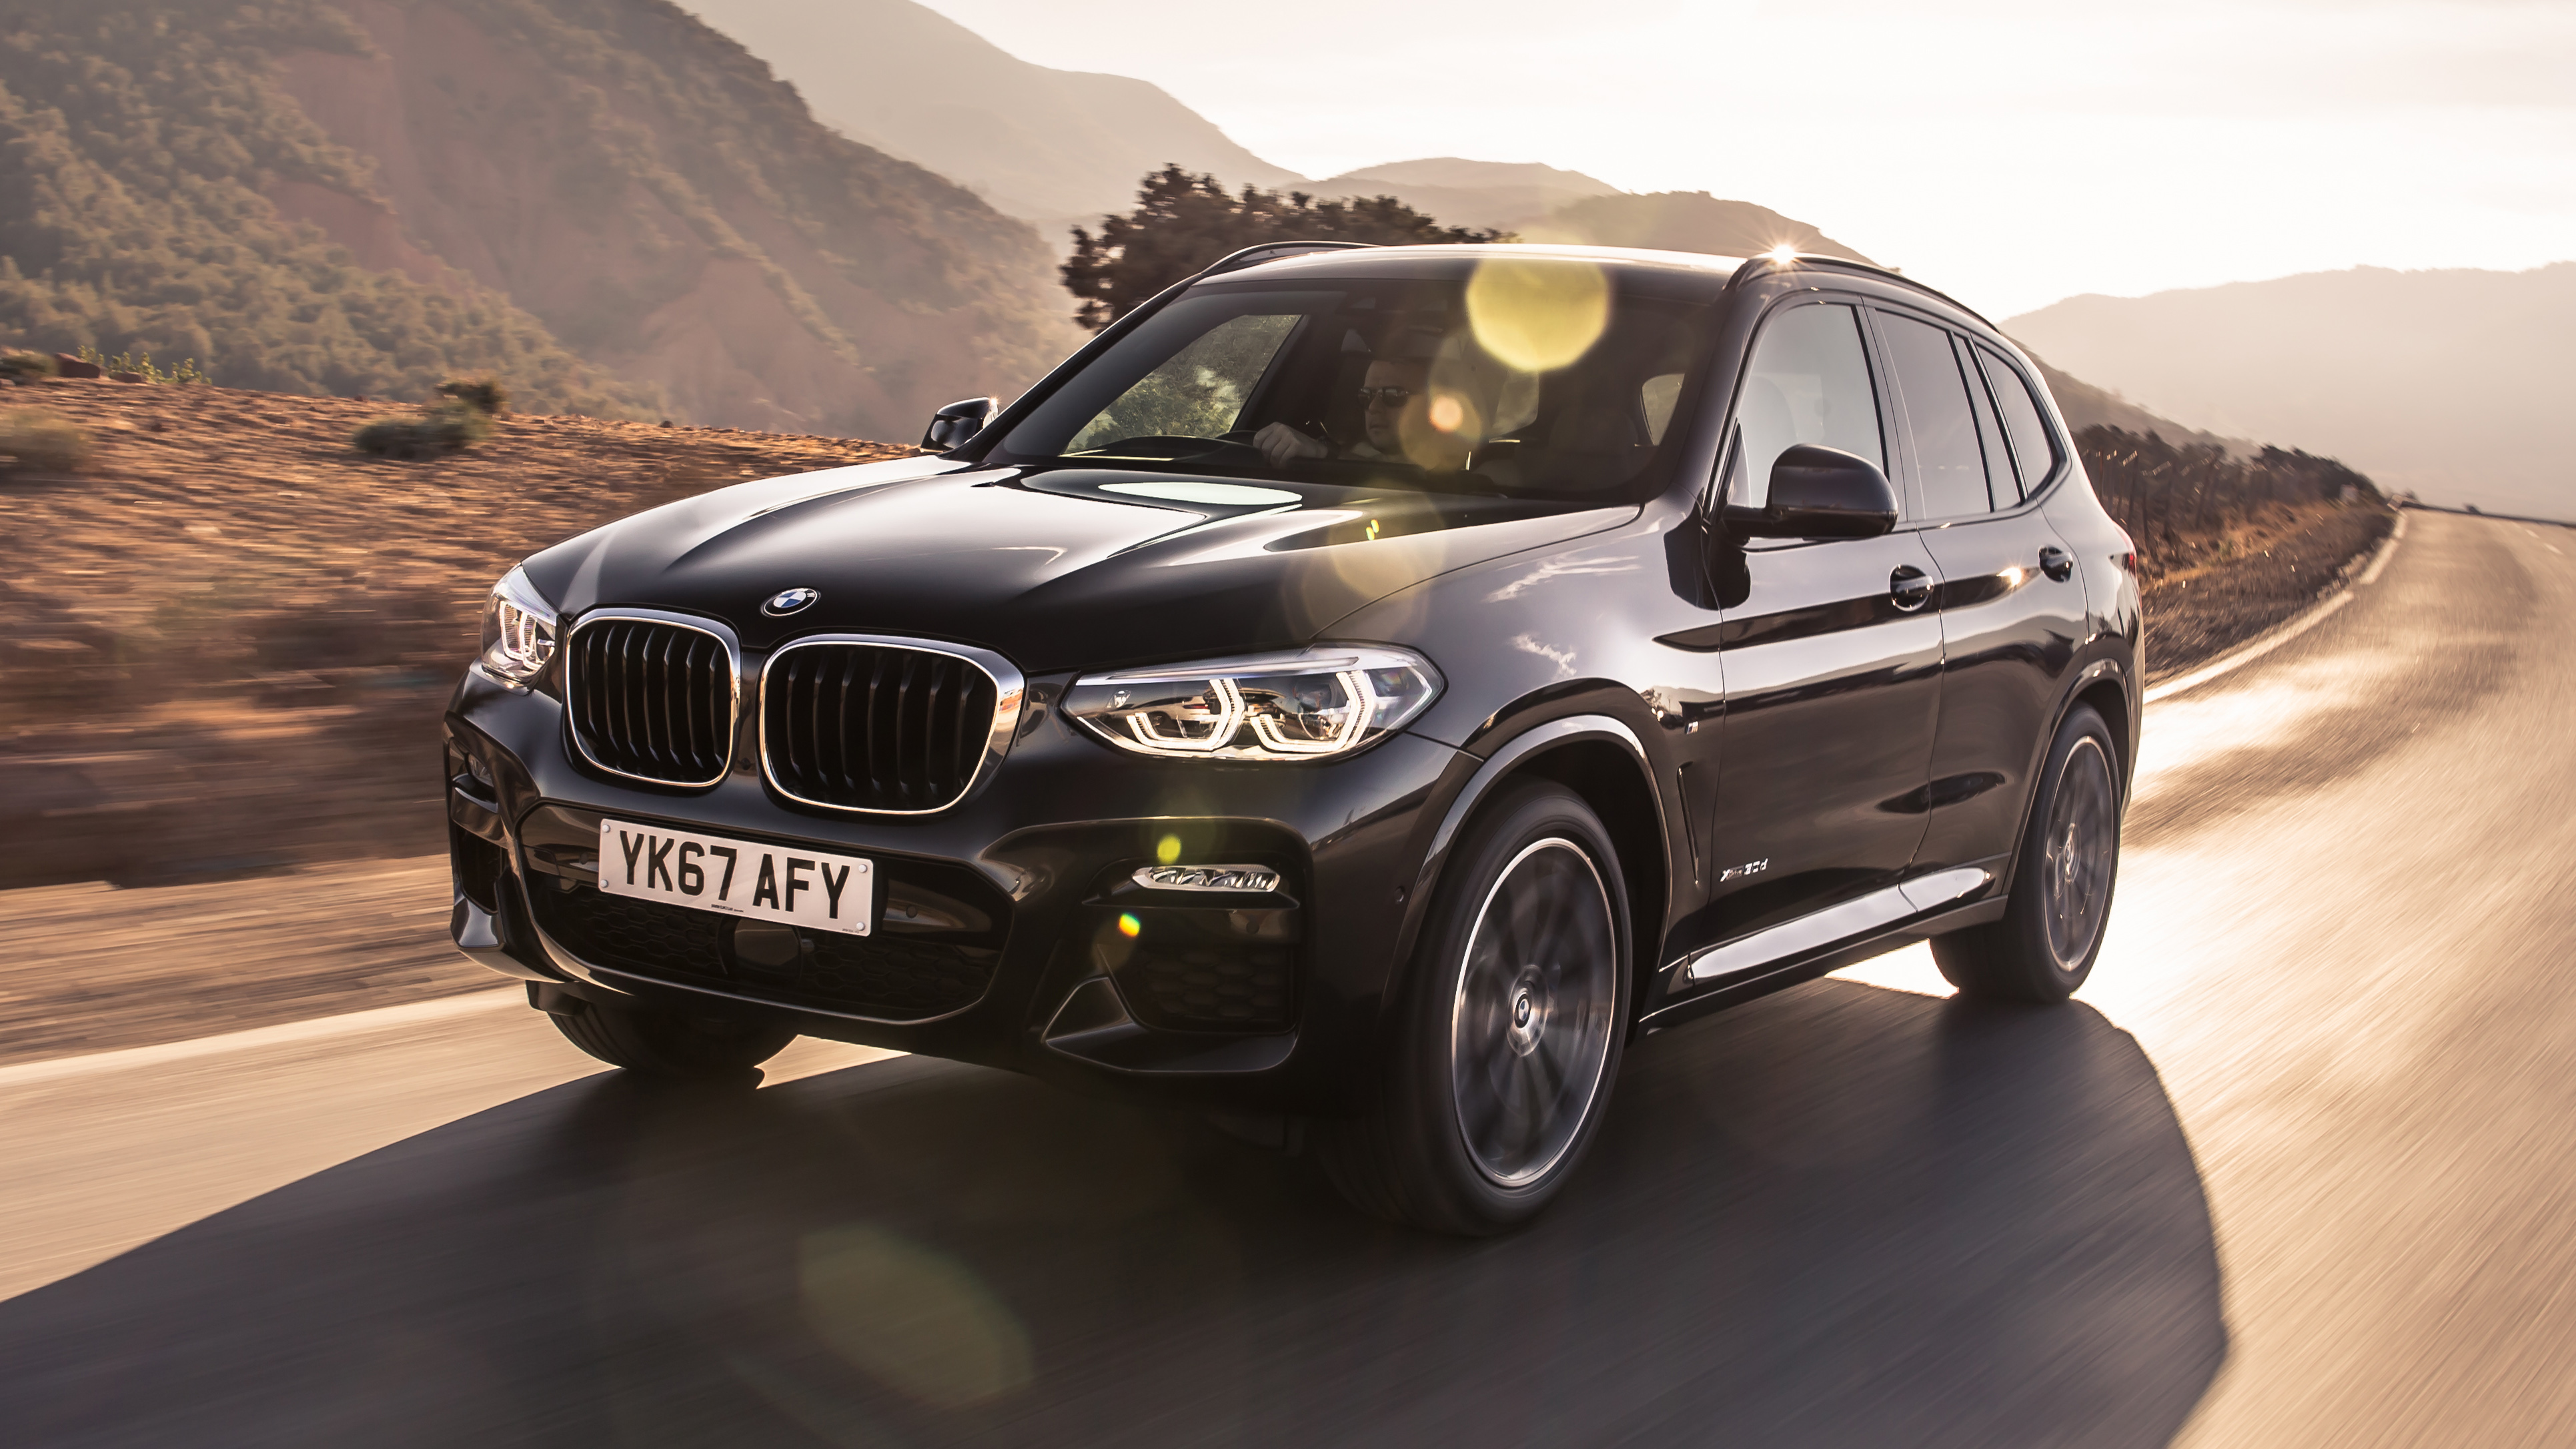 BMW X3 3 0d review: 261bhp SUV tested | Top Gear